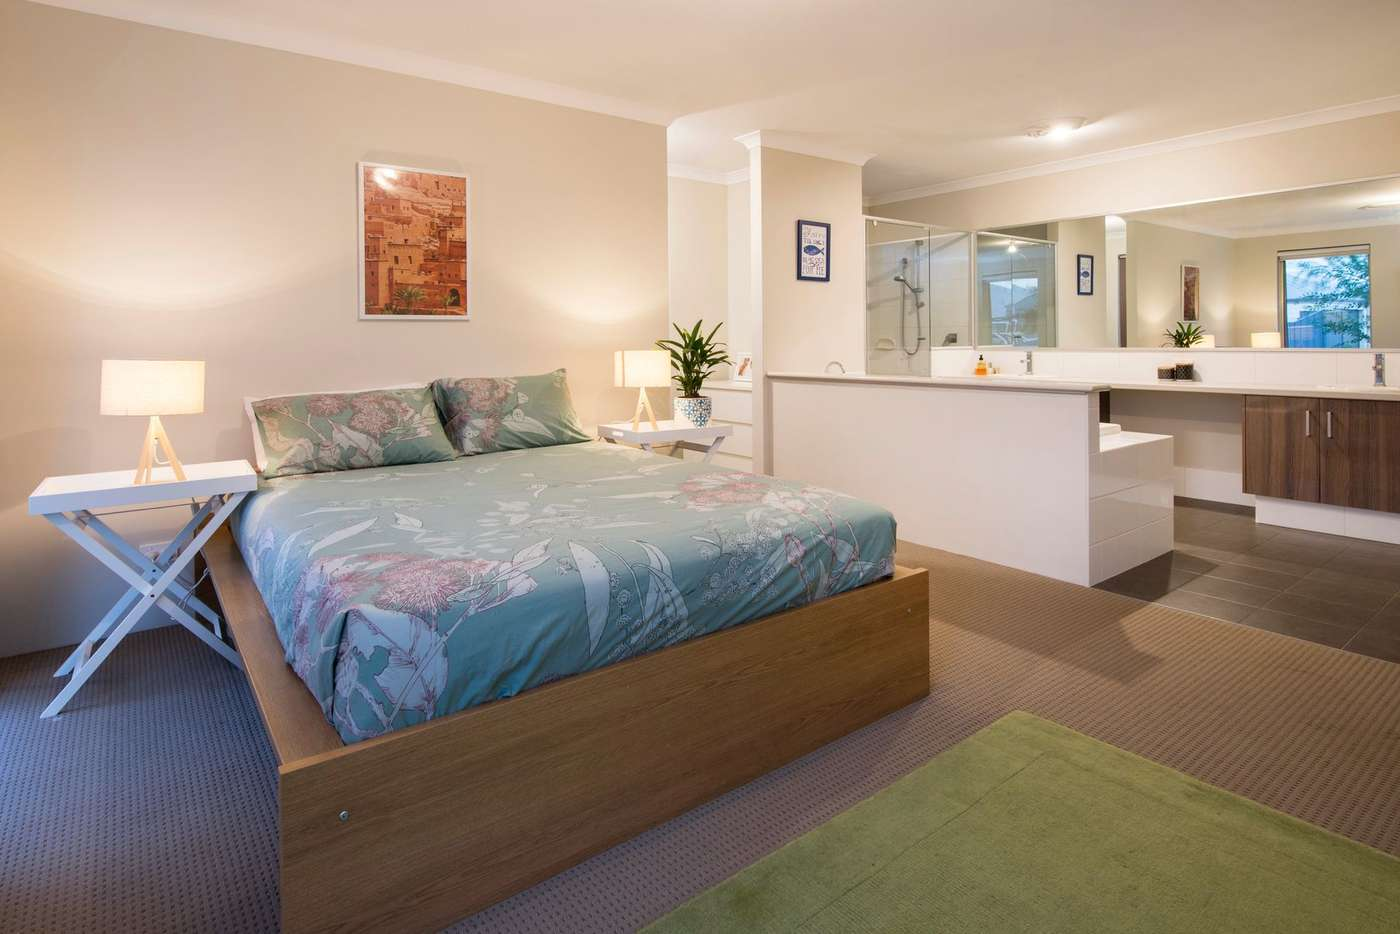 Sixth view of Homely house listing, 18 Cape Way, Dunsborough WA 6281